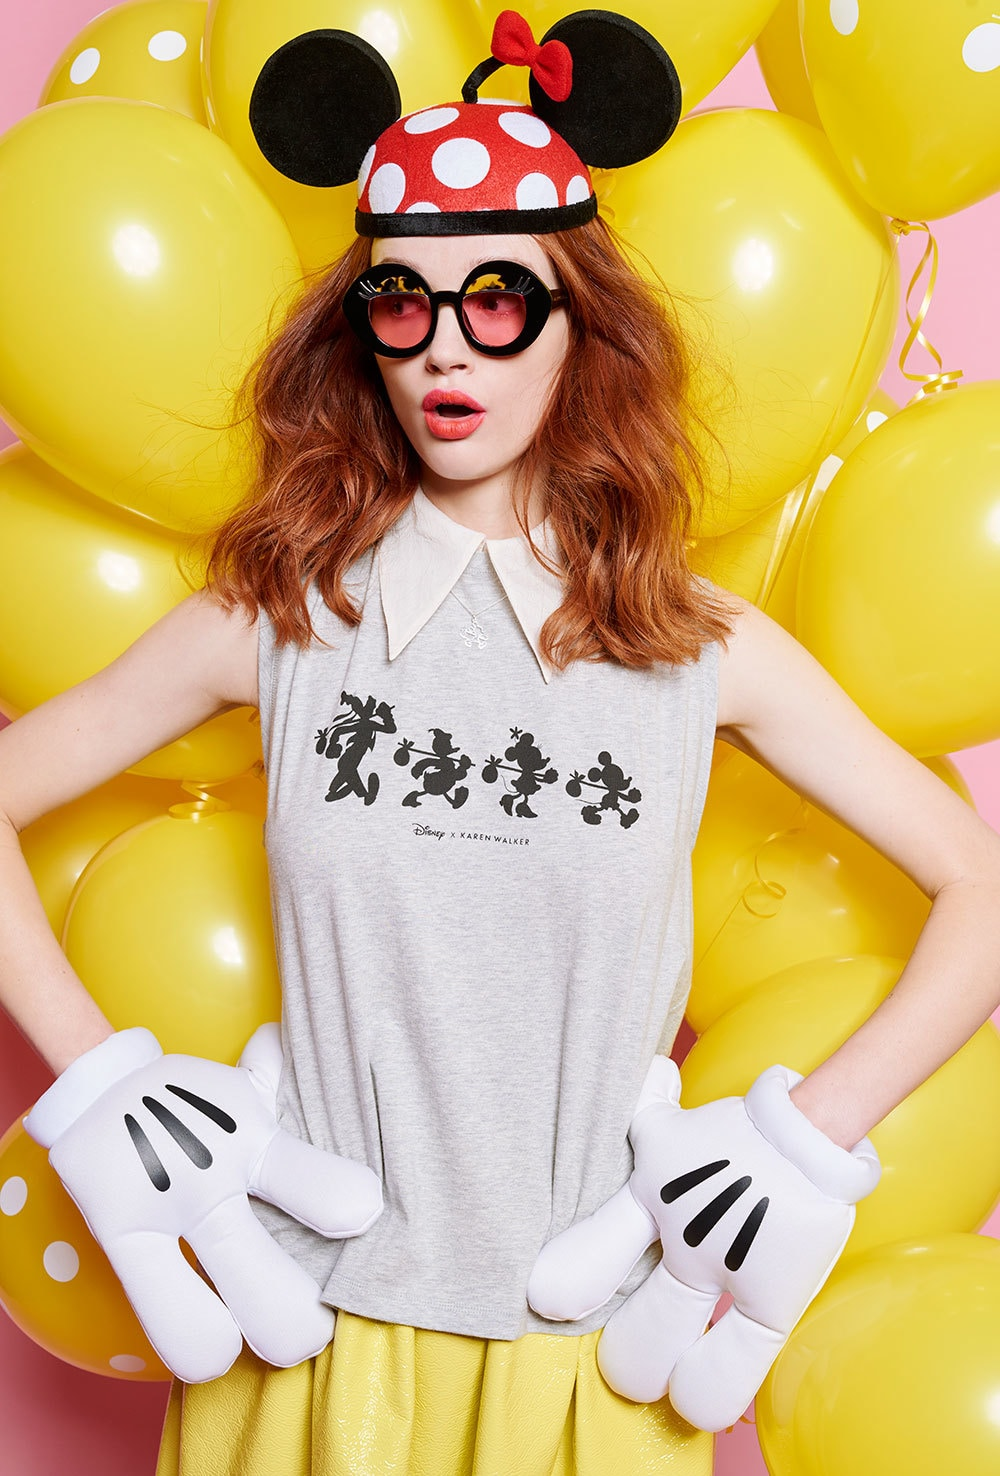 Model wearing products from the limited edition Disney x Karen Walker collection